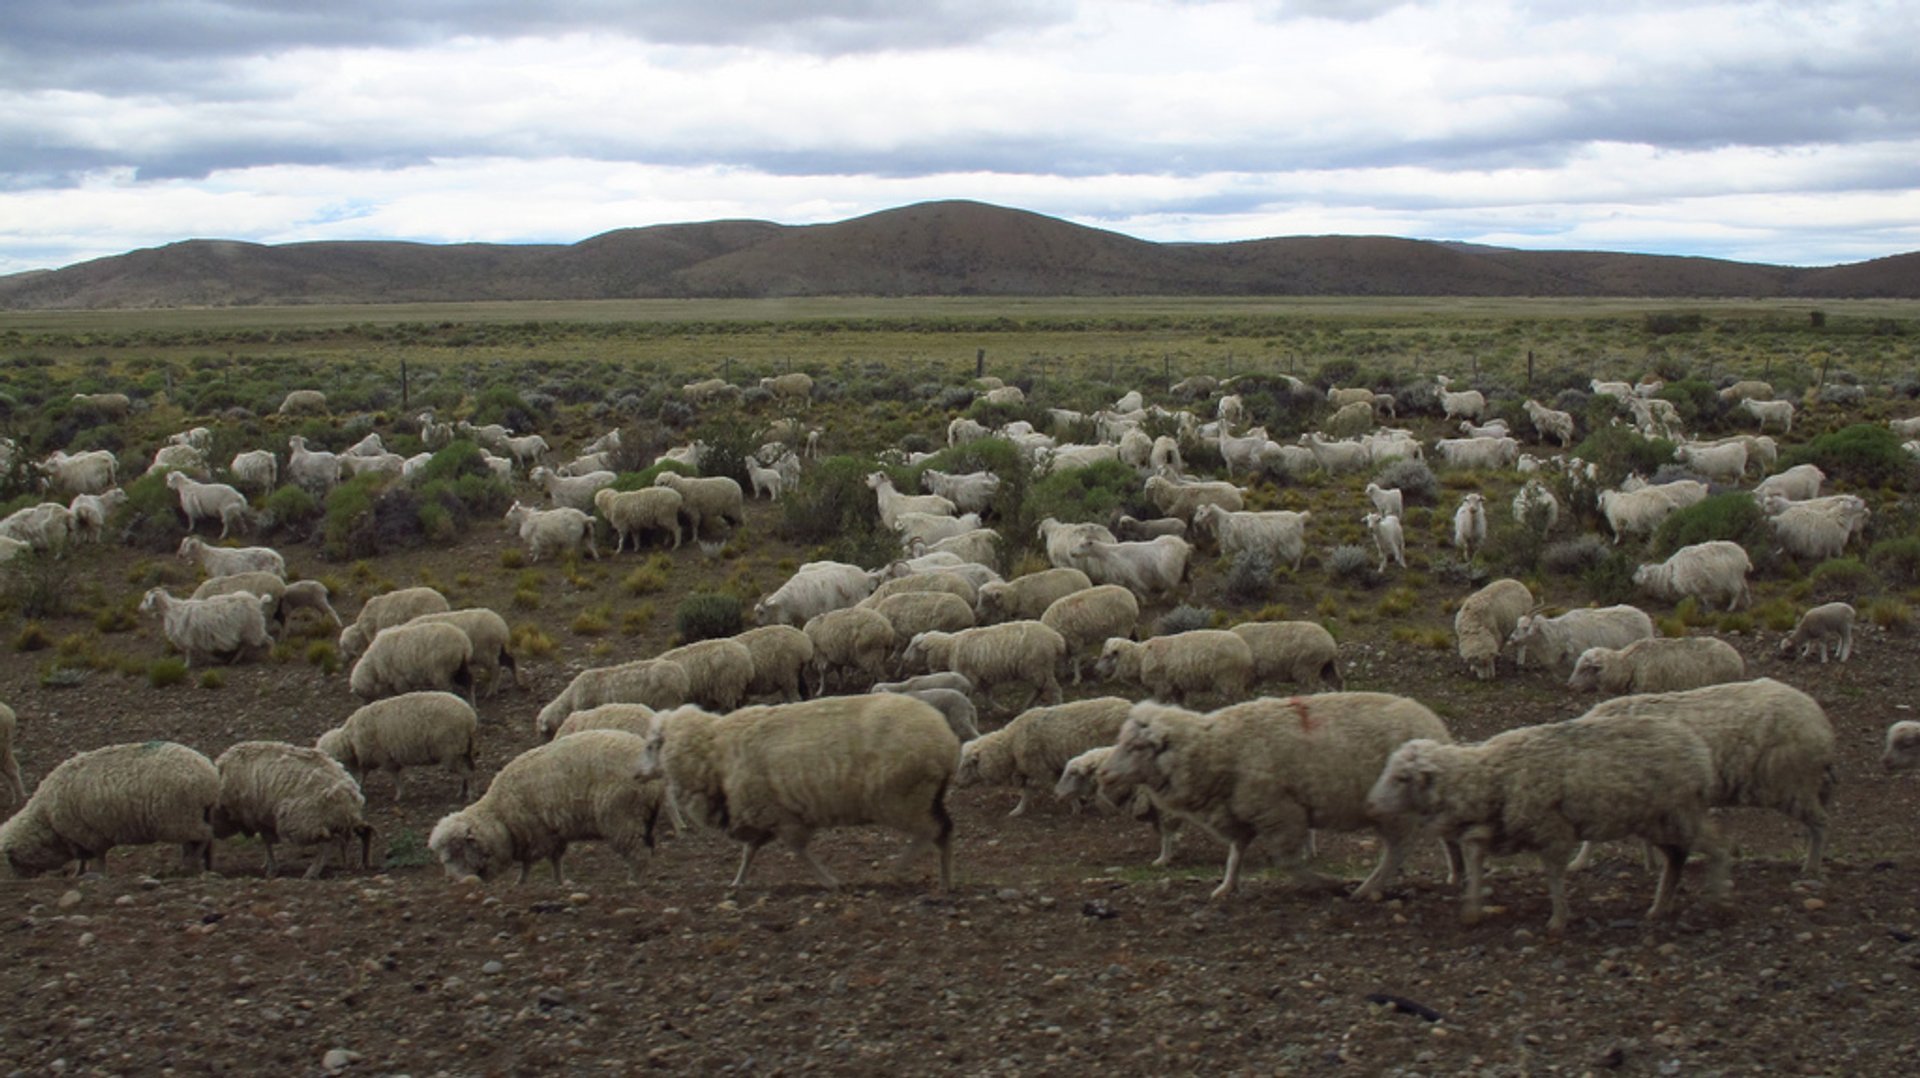 Best time to see Grazing Sheep in Patagonia 2020